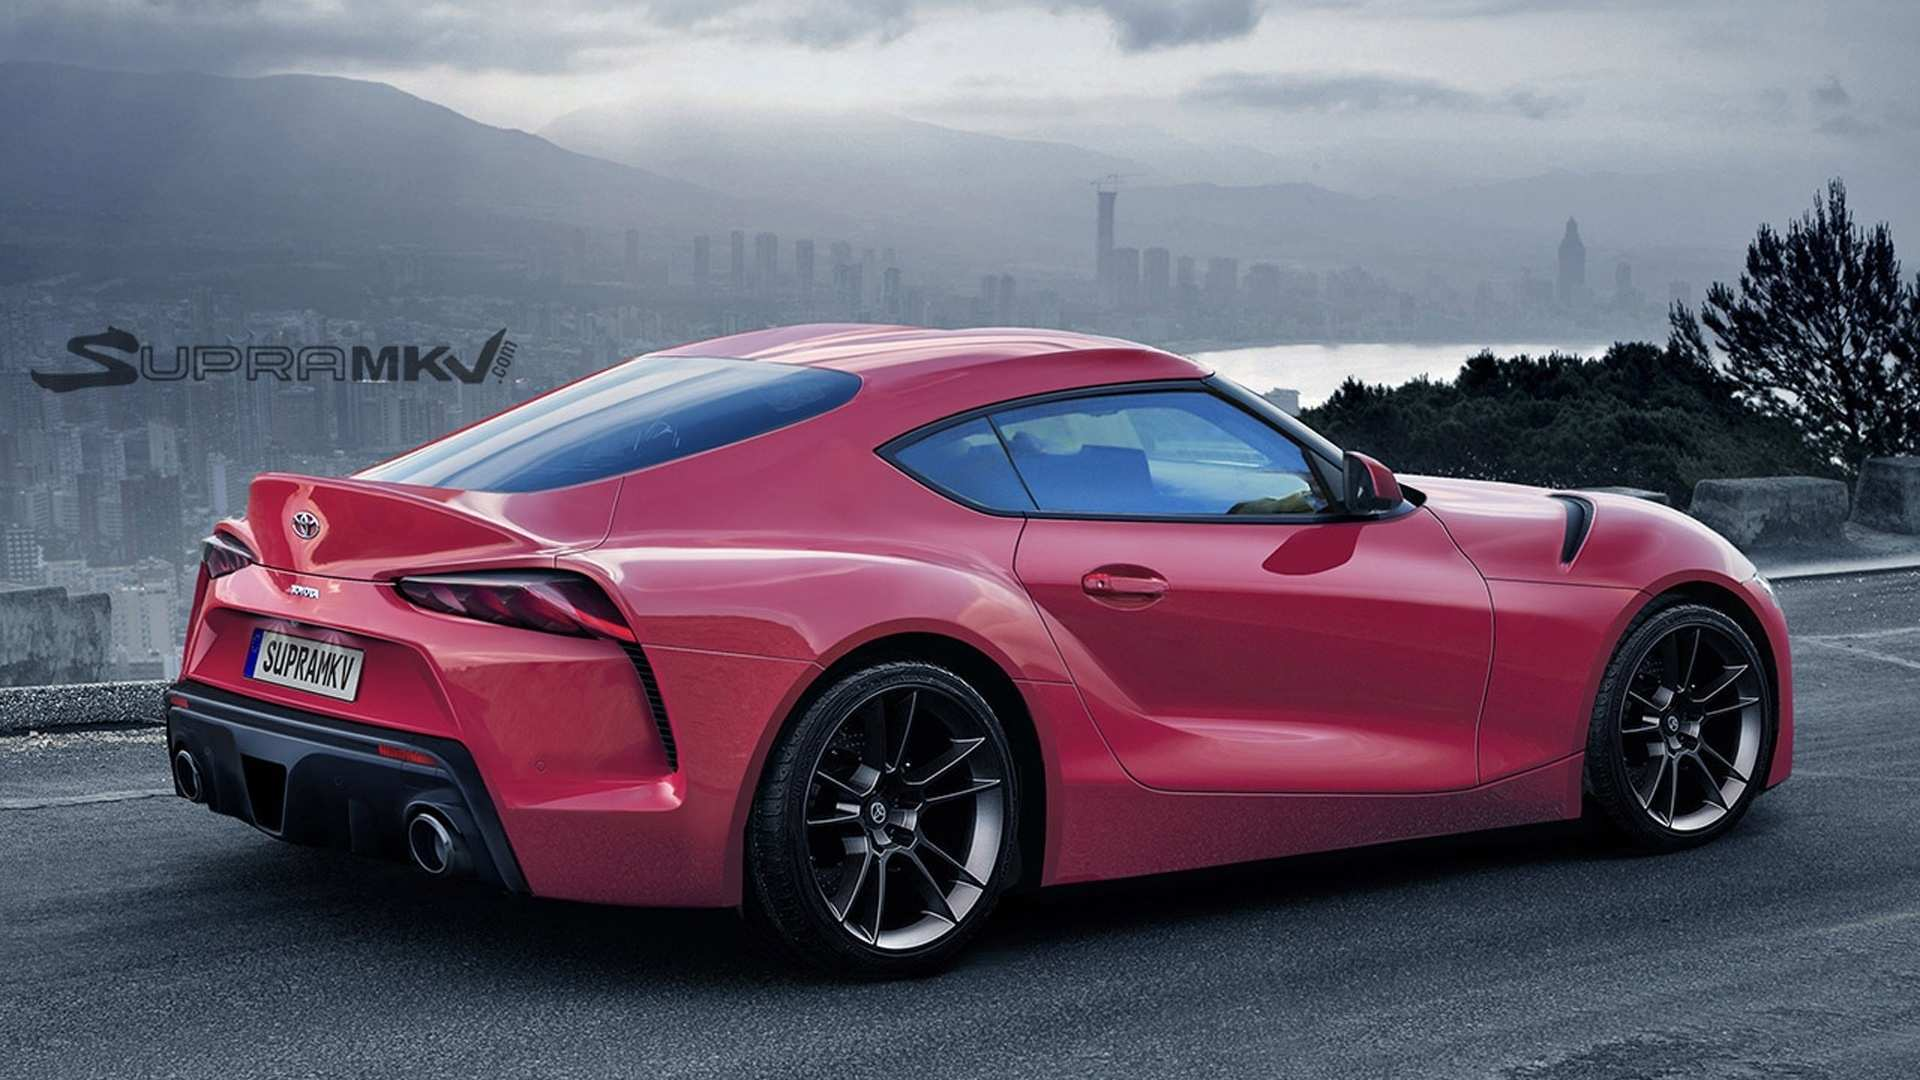 84 Best Review New Supra Toyota 2019 Redesign And Price New Review with New Supra Toyota 2019 Redesign And Price